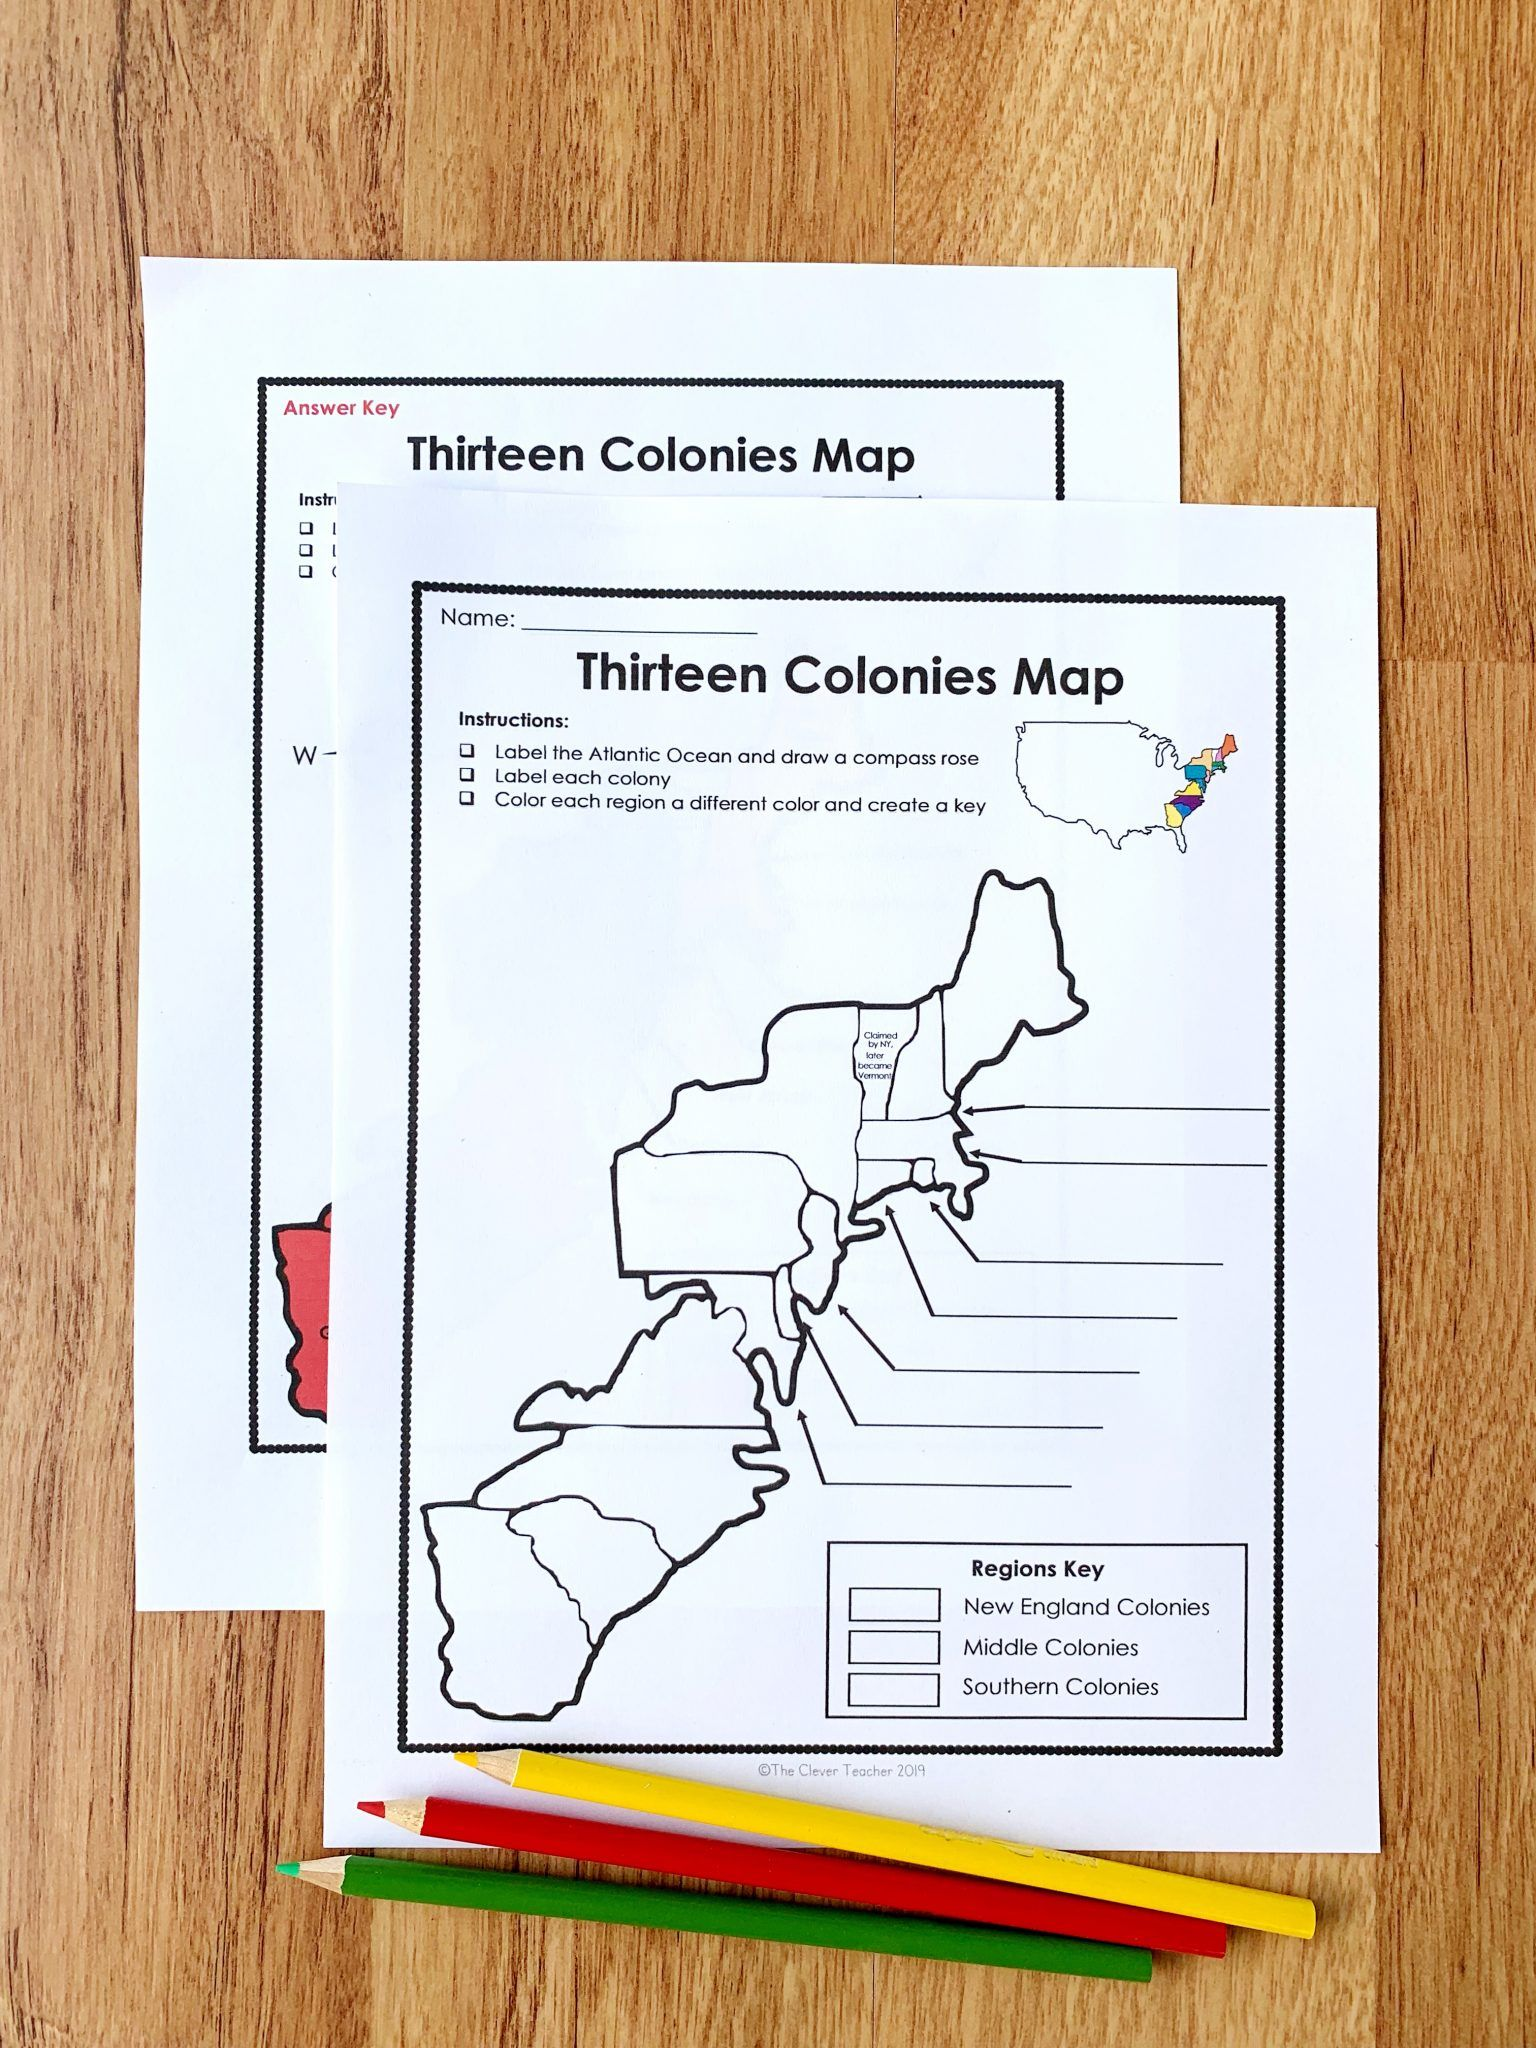 13 Colonies Free Map Worksheet And Lesson For Students In